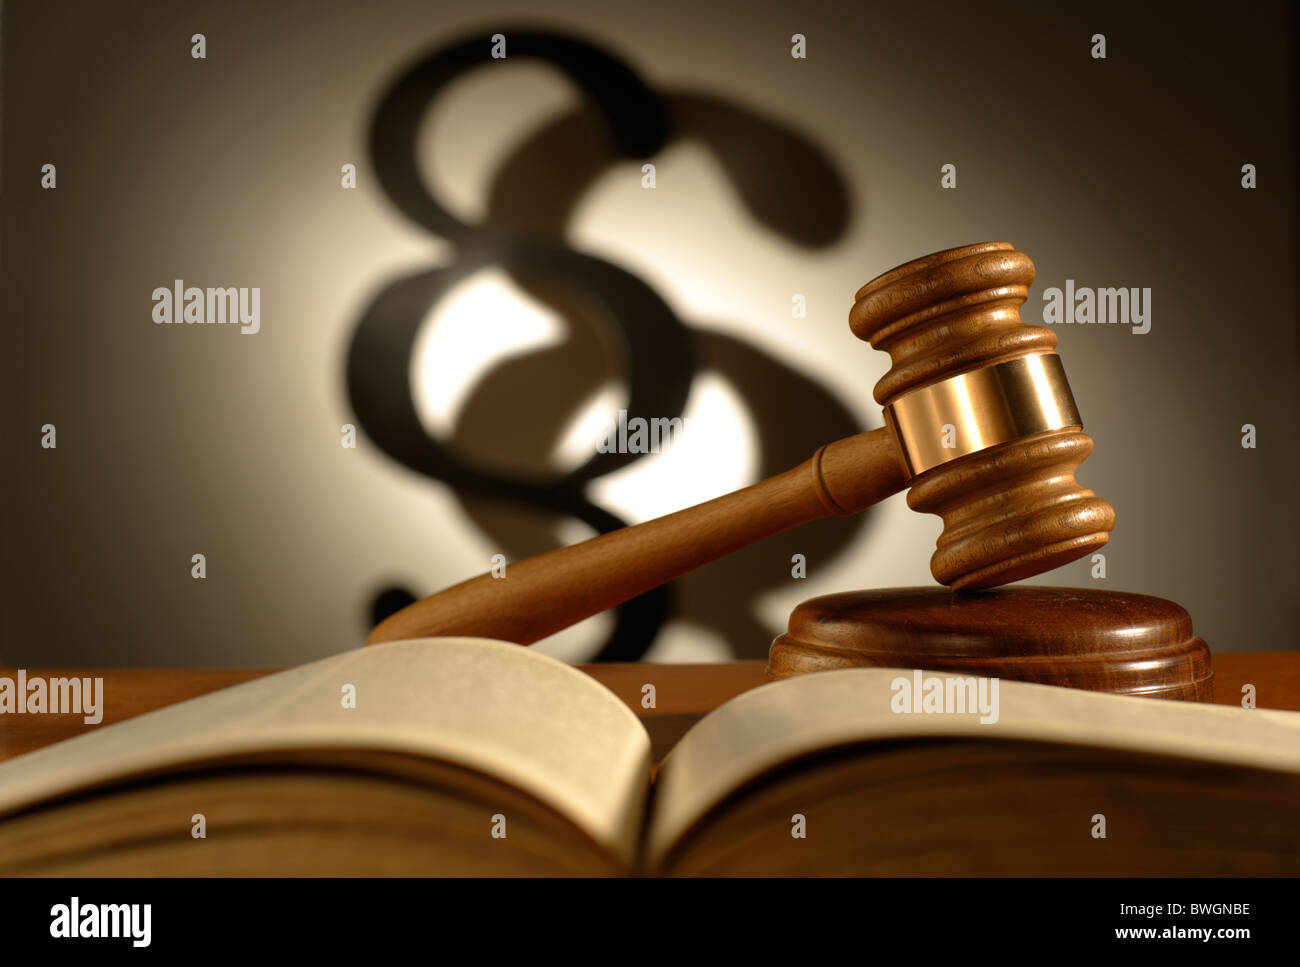 Gavel and a section symbol - Stock Image